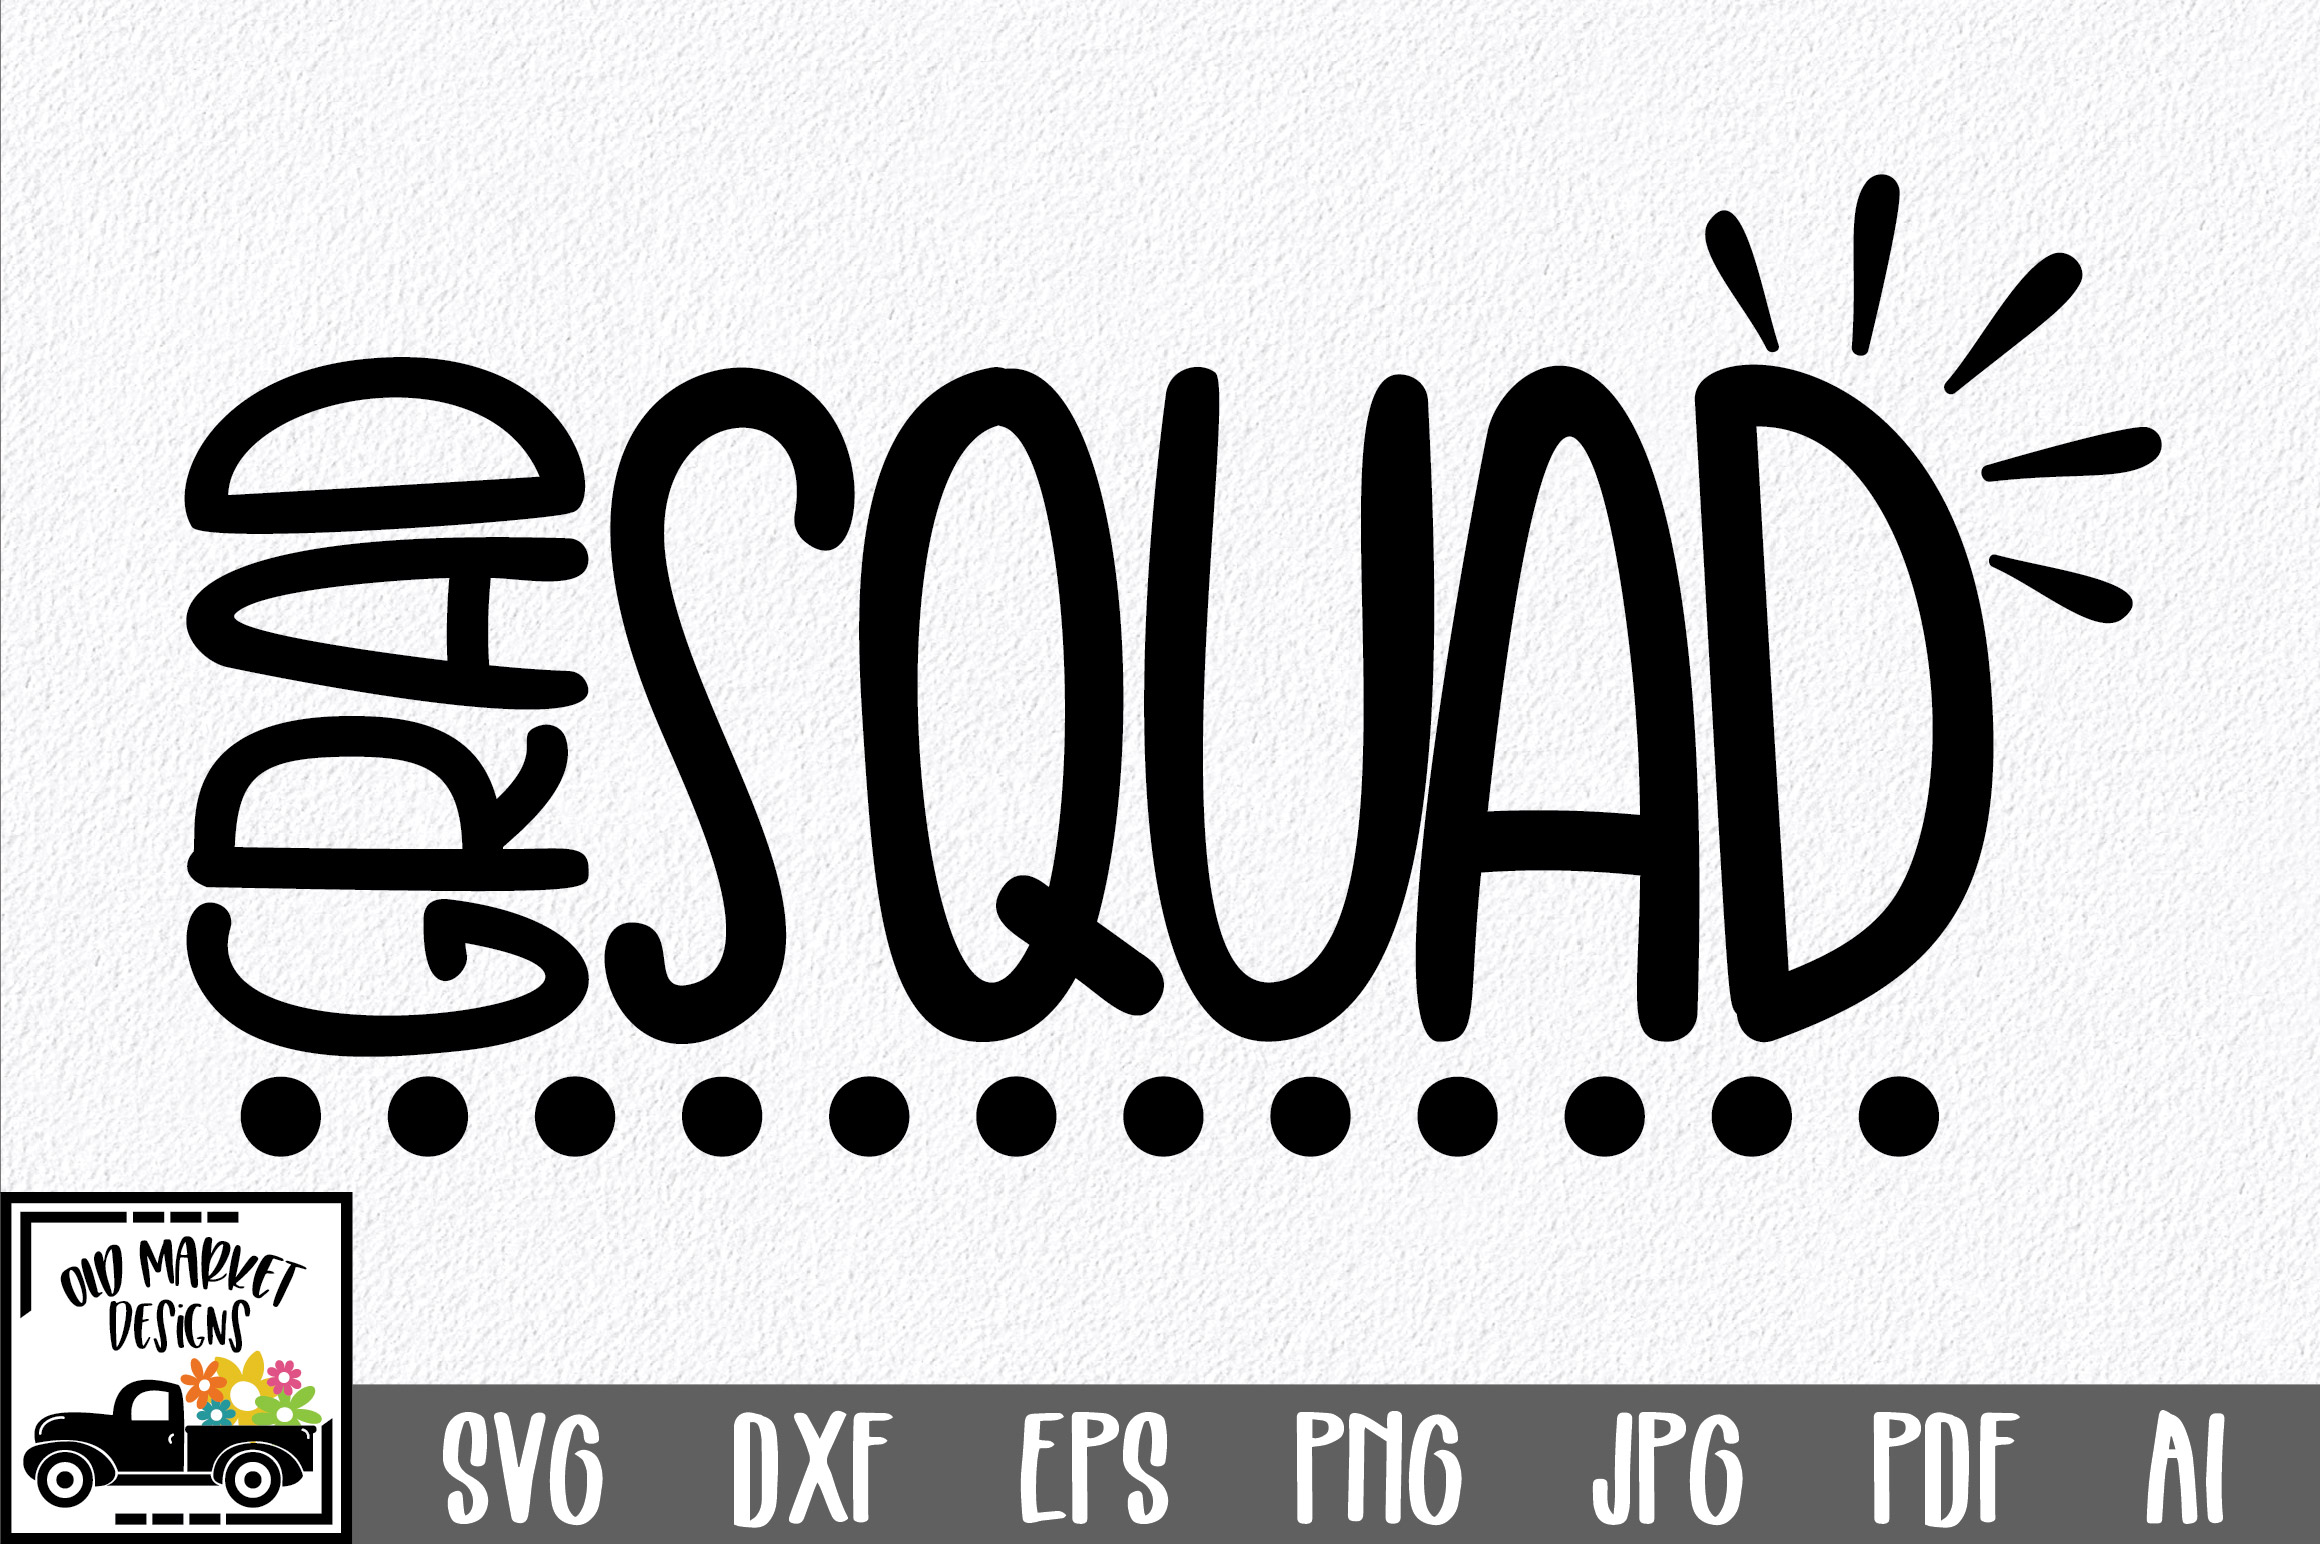 Download Free Grad Squad Cut File Graduation Graphic By Oldmarketdesigns for Cricut Explore, Silhouette and other cutting machines.